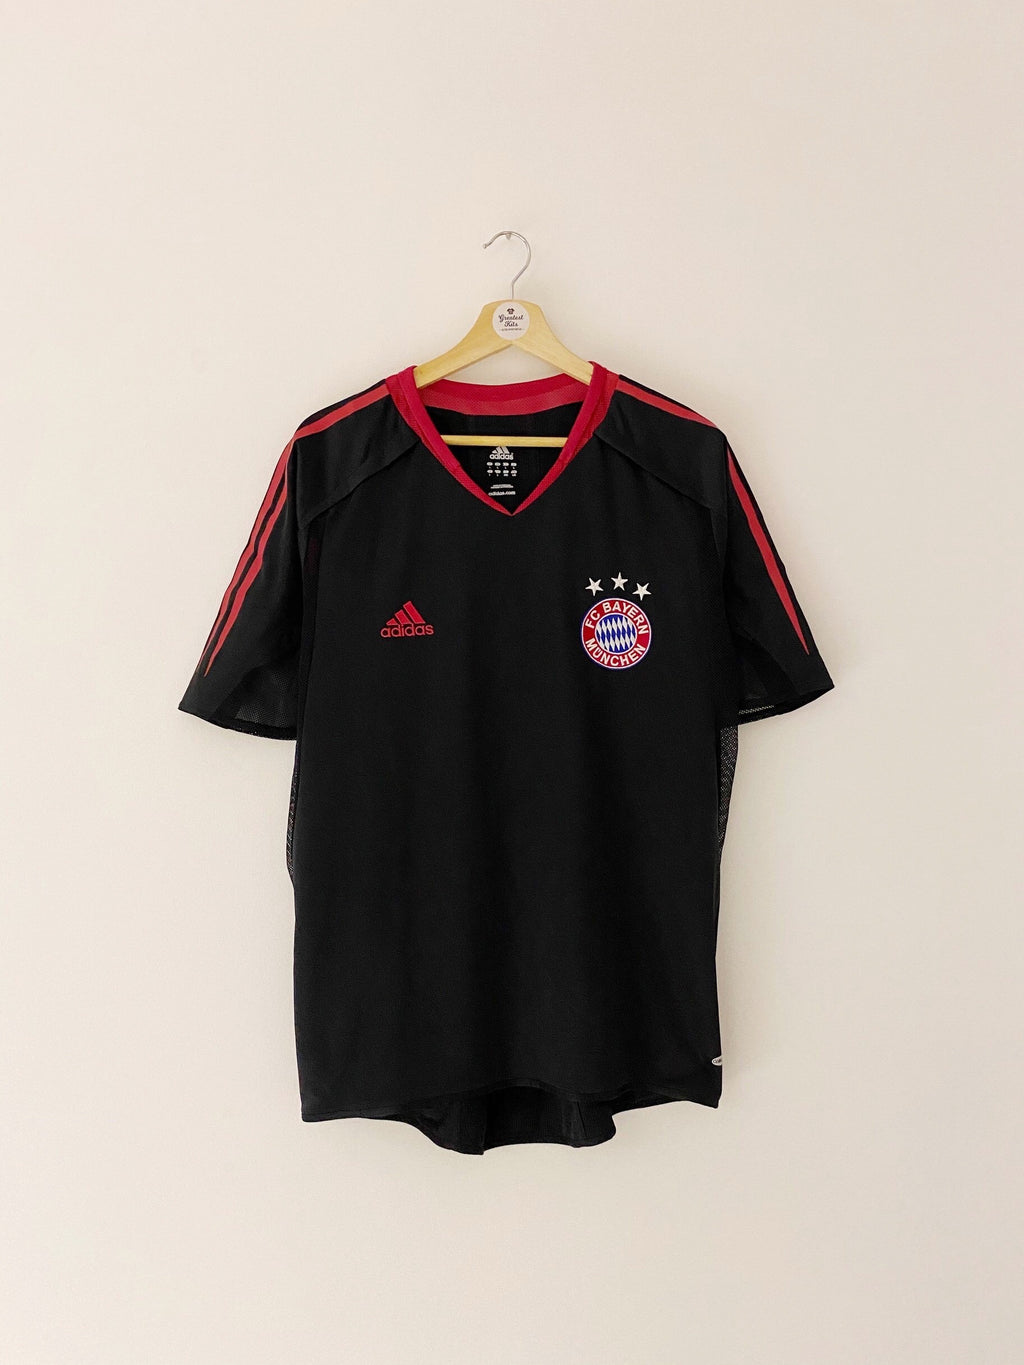 2004/05 Bayern Munich *Player Issue* CL Shirt (L) 9/10